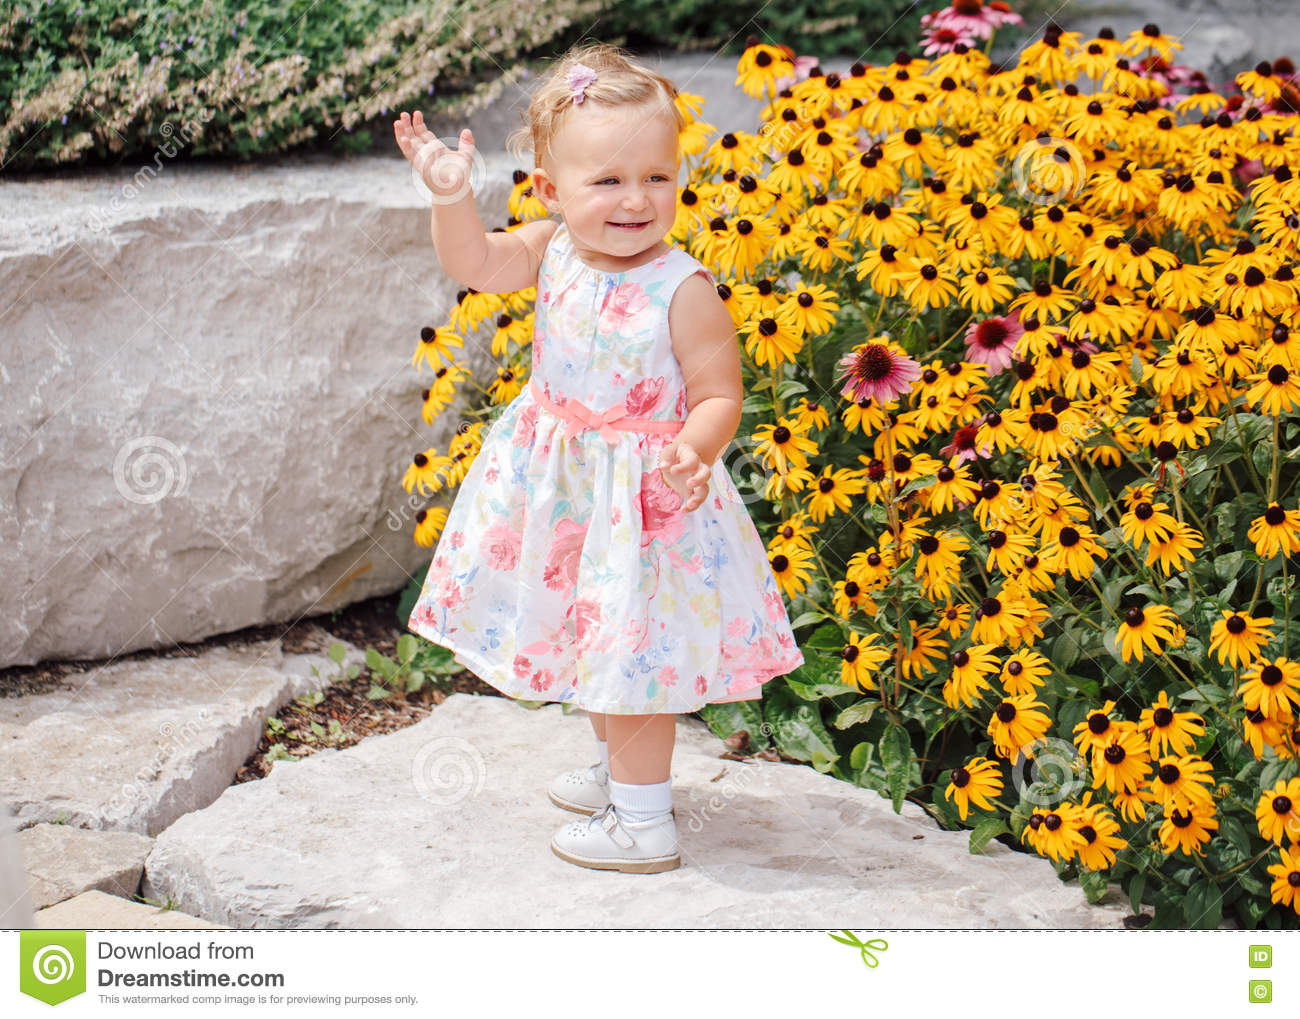 4570a0404ea6 Cute Adorable White Caucasian Baby Girl Child In White Dress ...